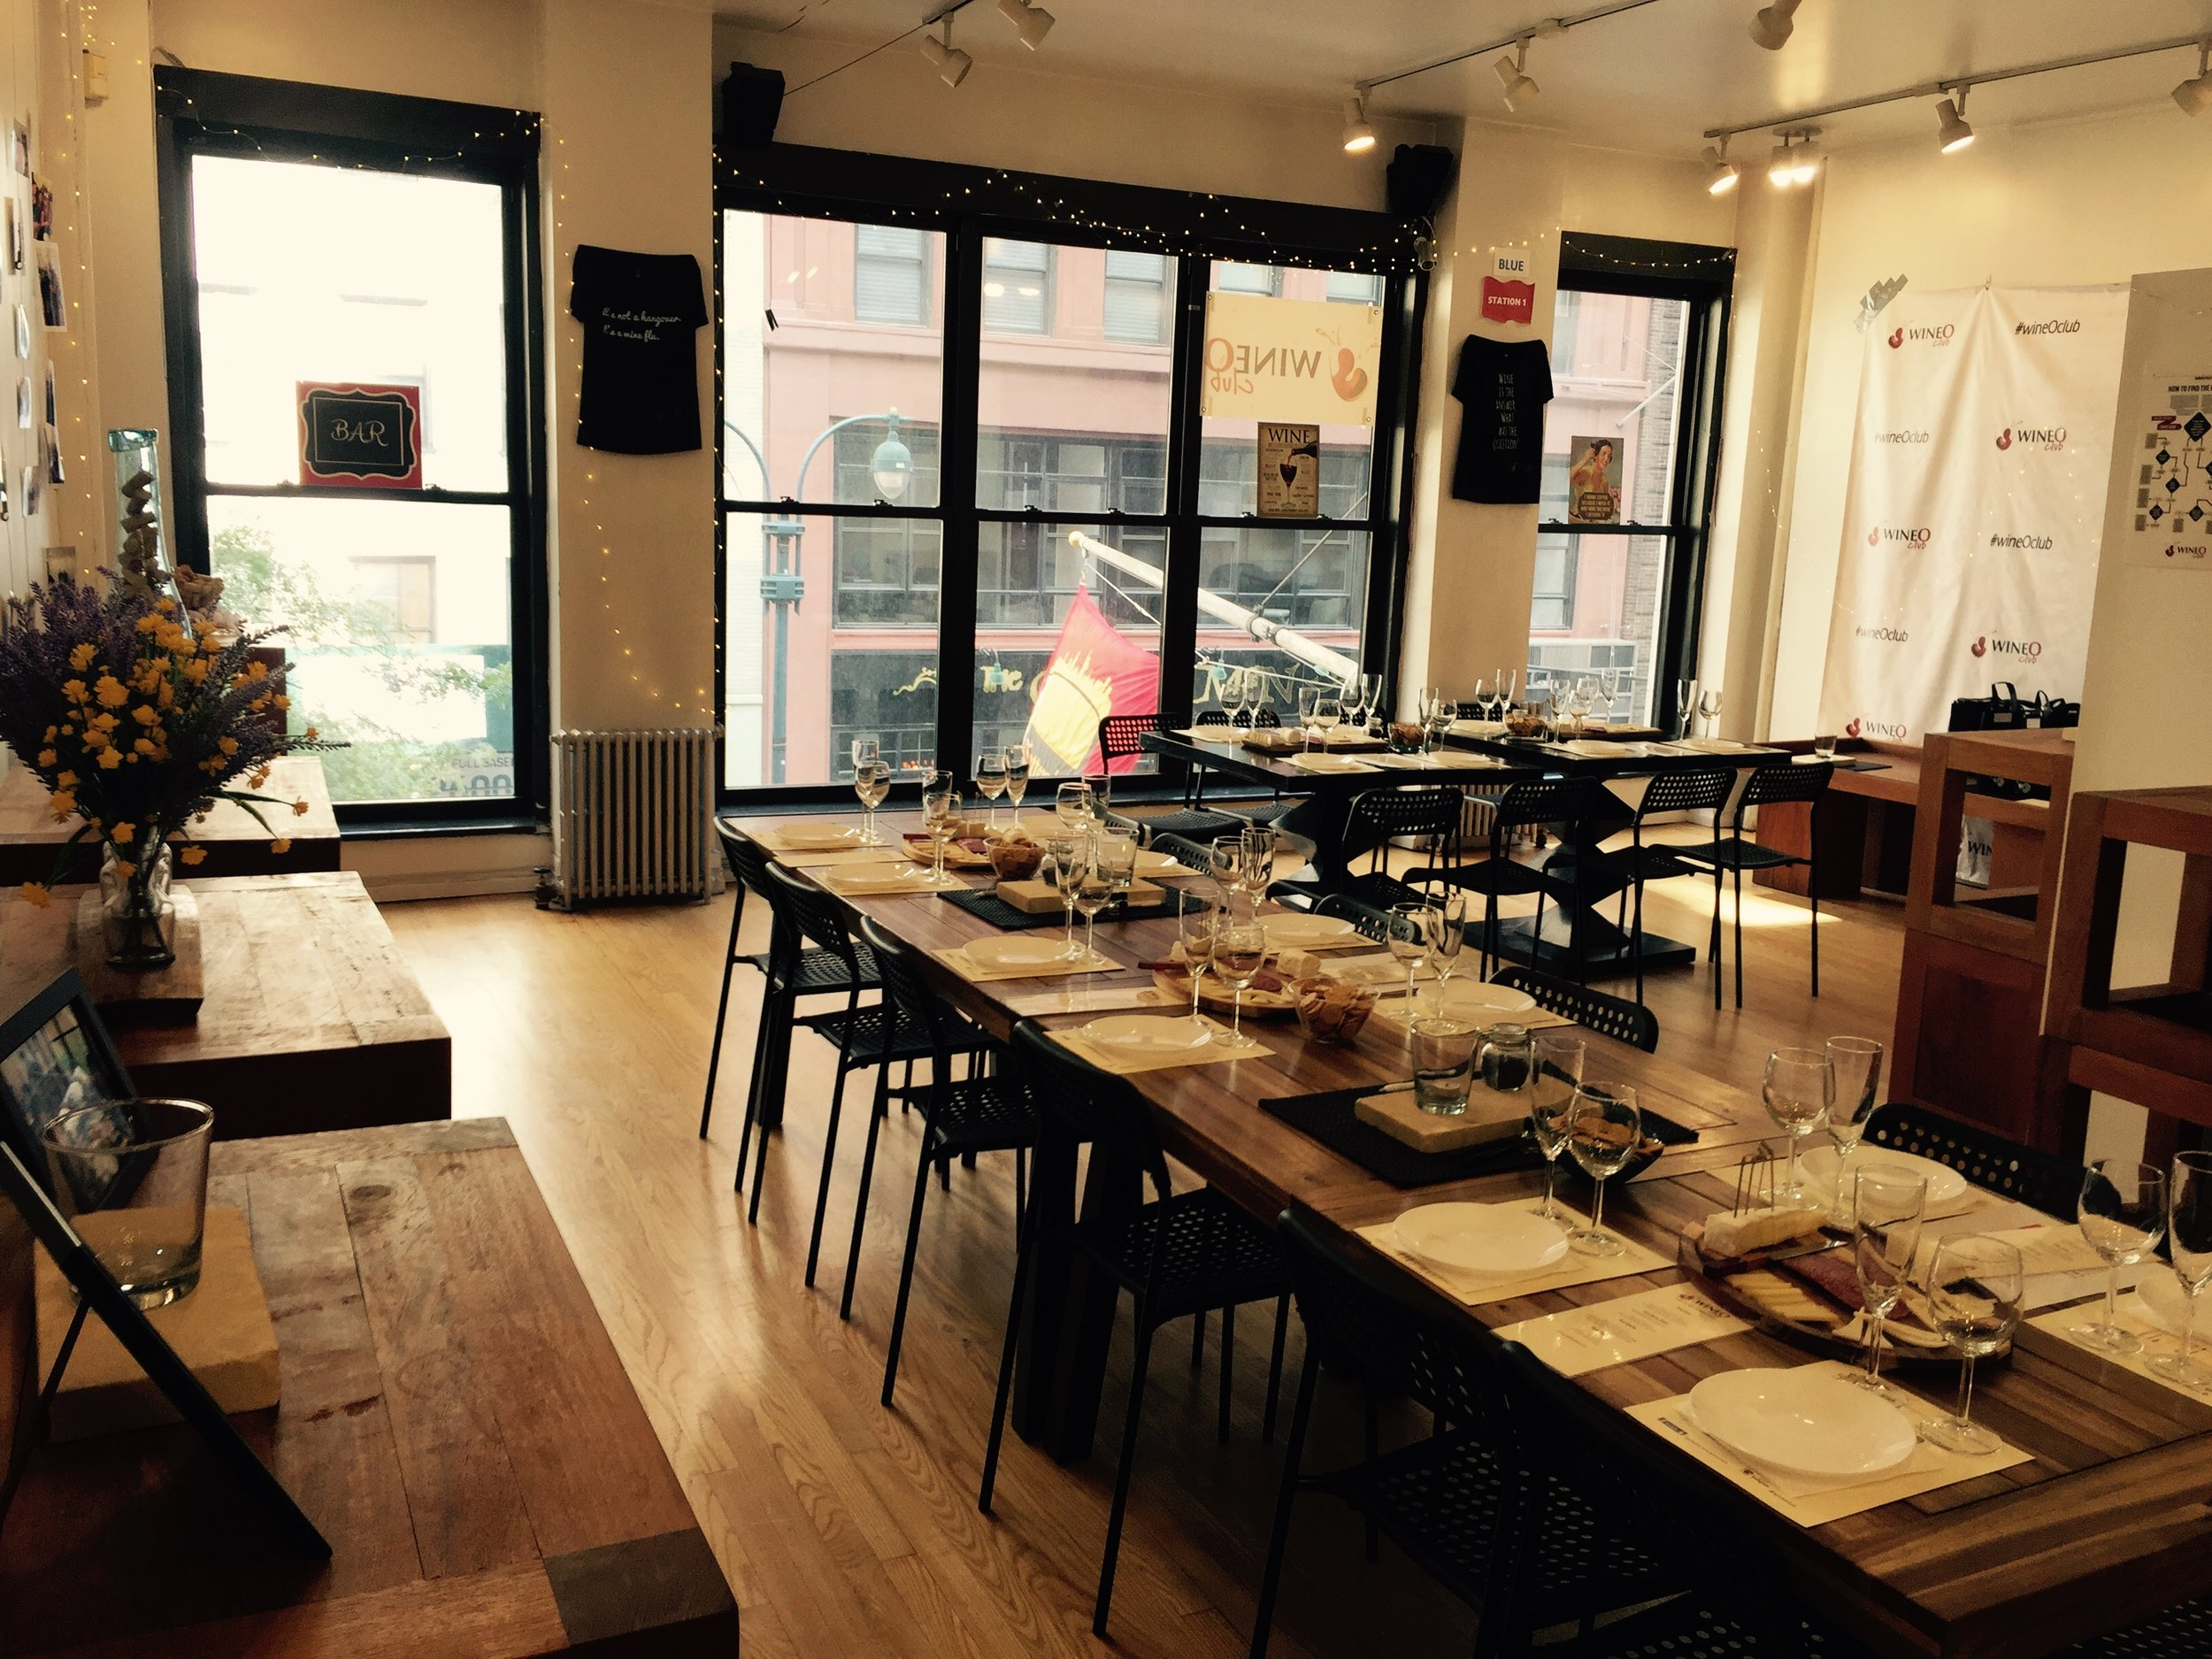 Located in Midtown NYC - * Great Location (Near the Empire State building)* Beautiful, Modern, Natural Light, Hardwood Floors* Different Setups for different types of events* Capacity up to 100ppl